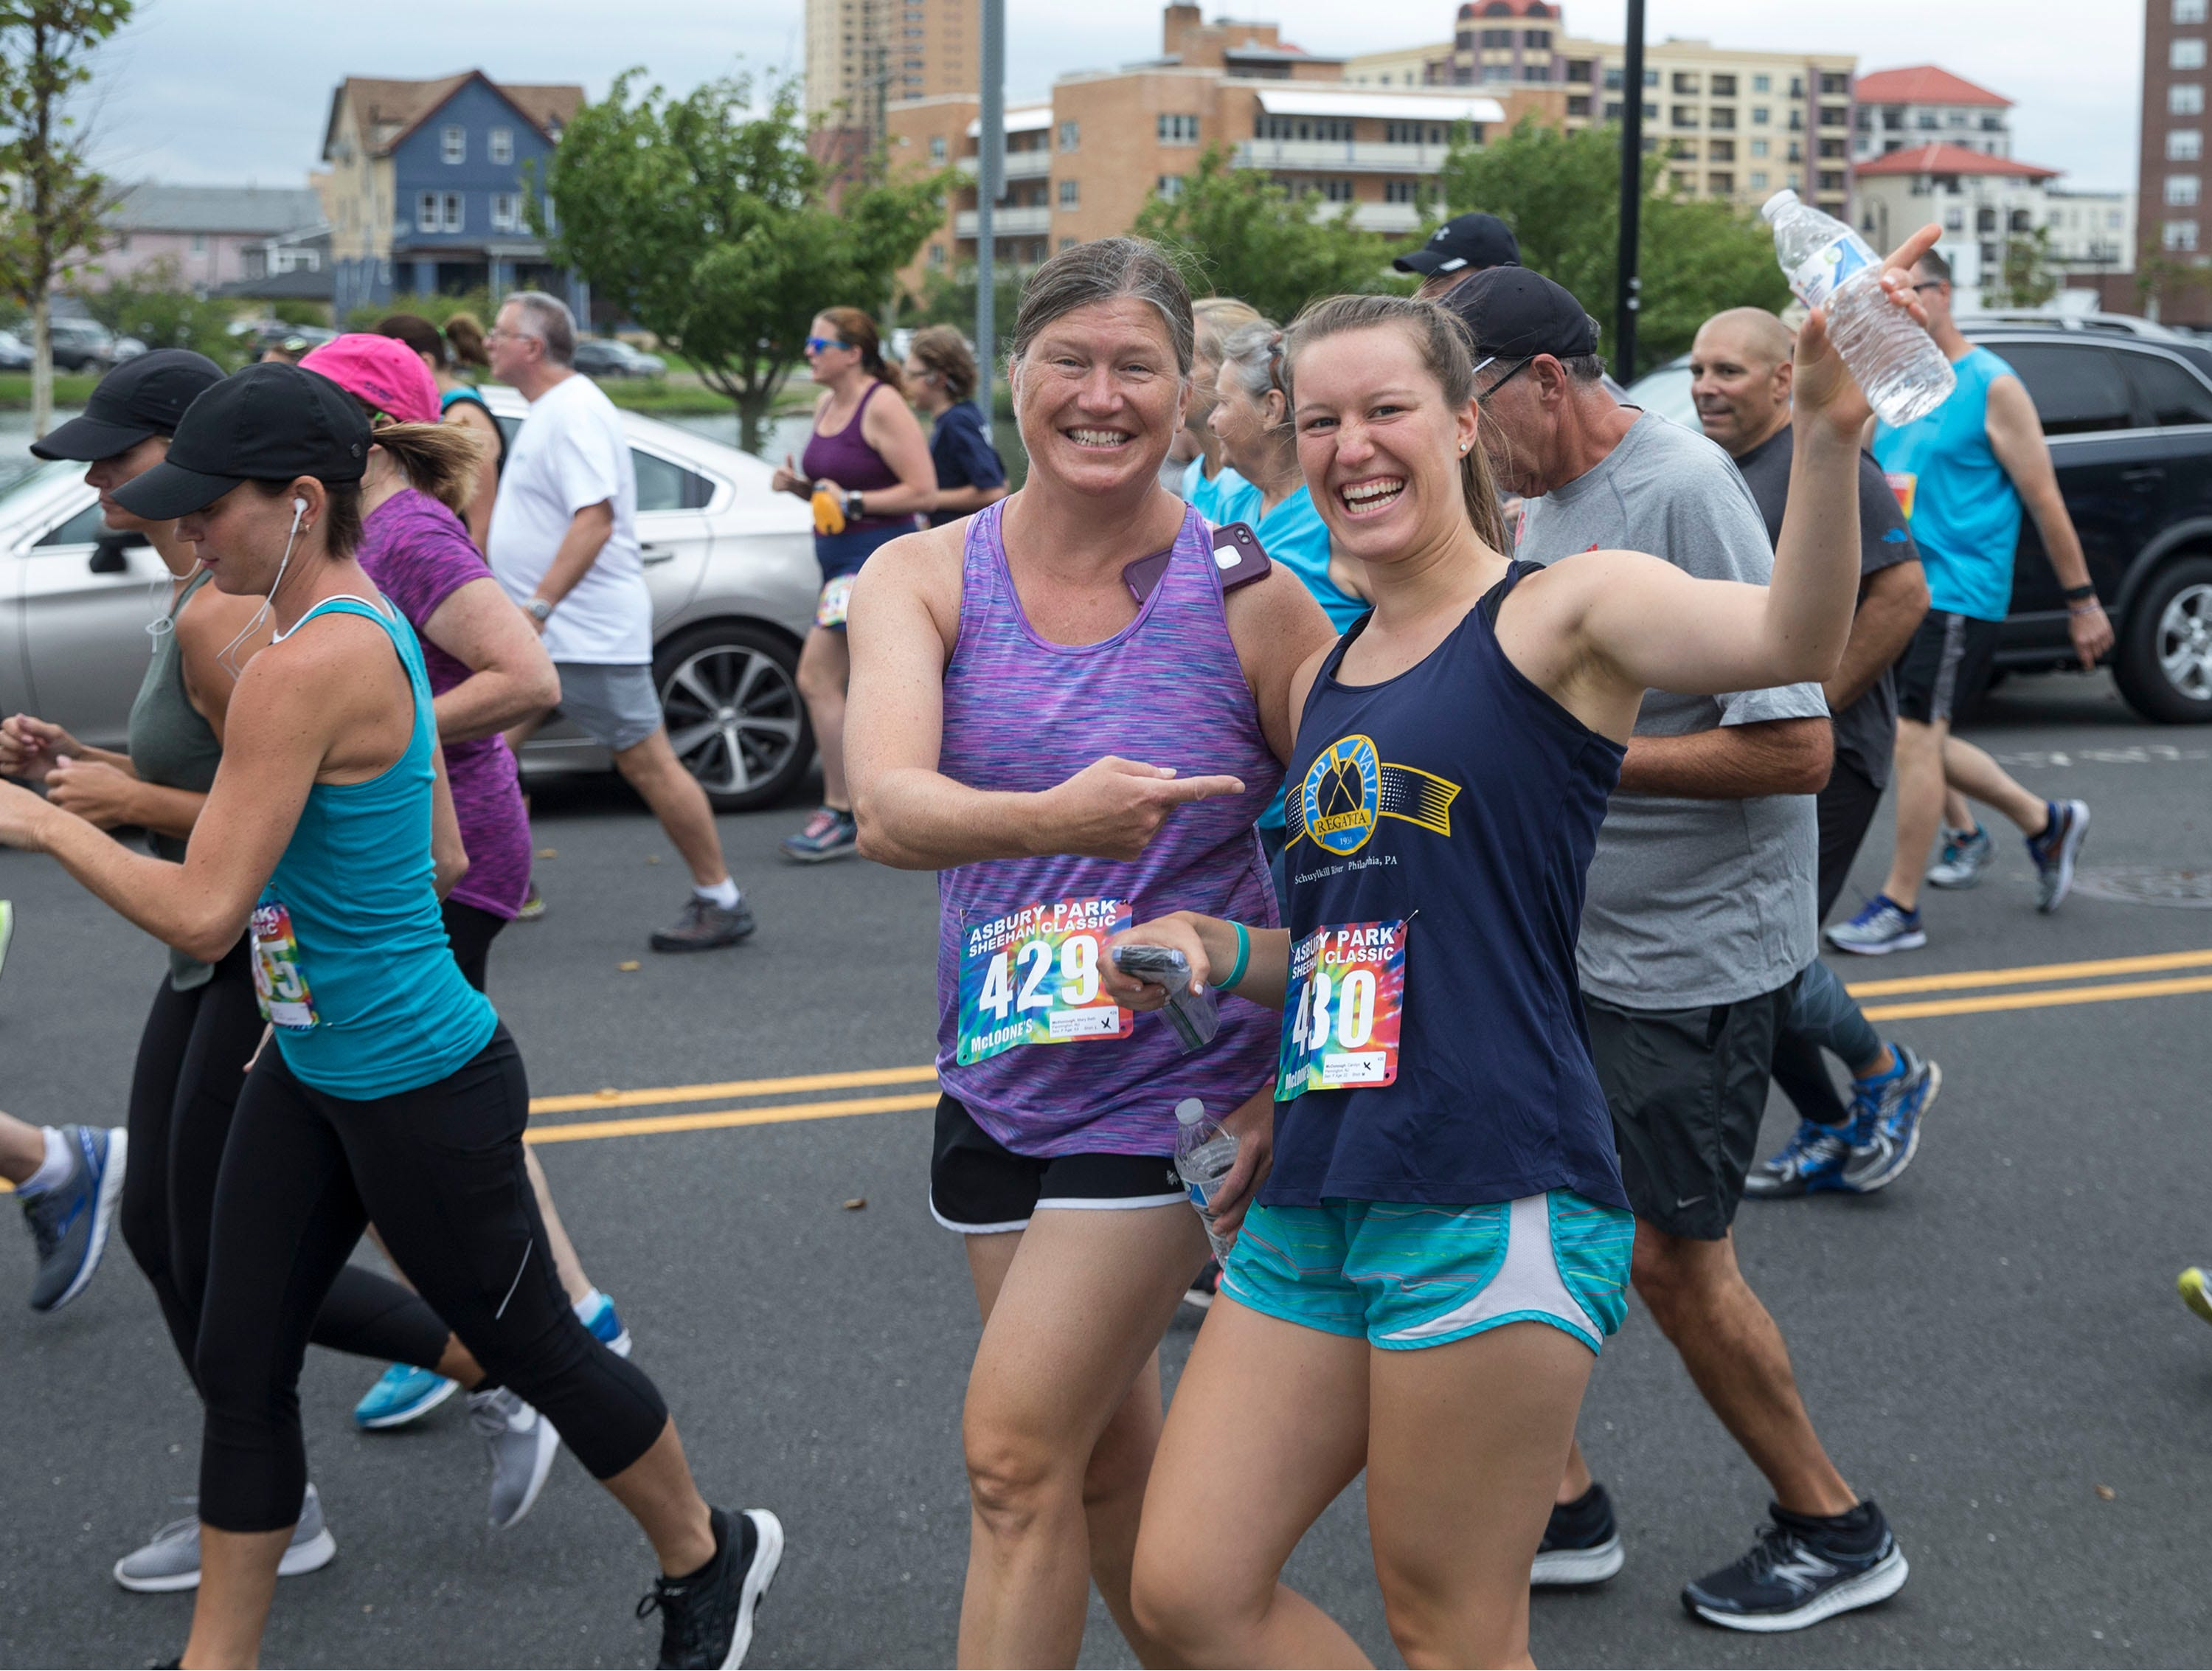 The Asbury Park 5K race makes its way along city streets and finishes after a stretch on the boardwalk. 